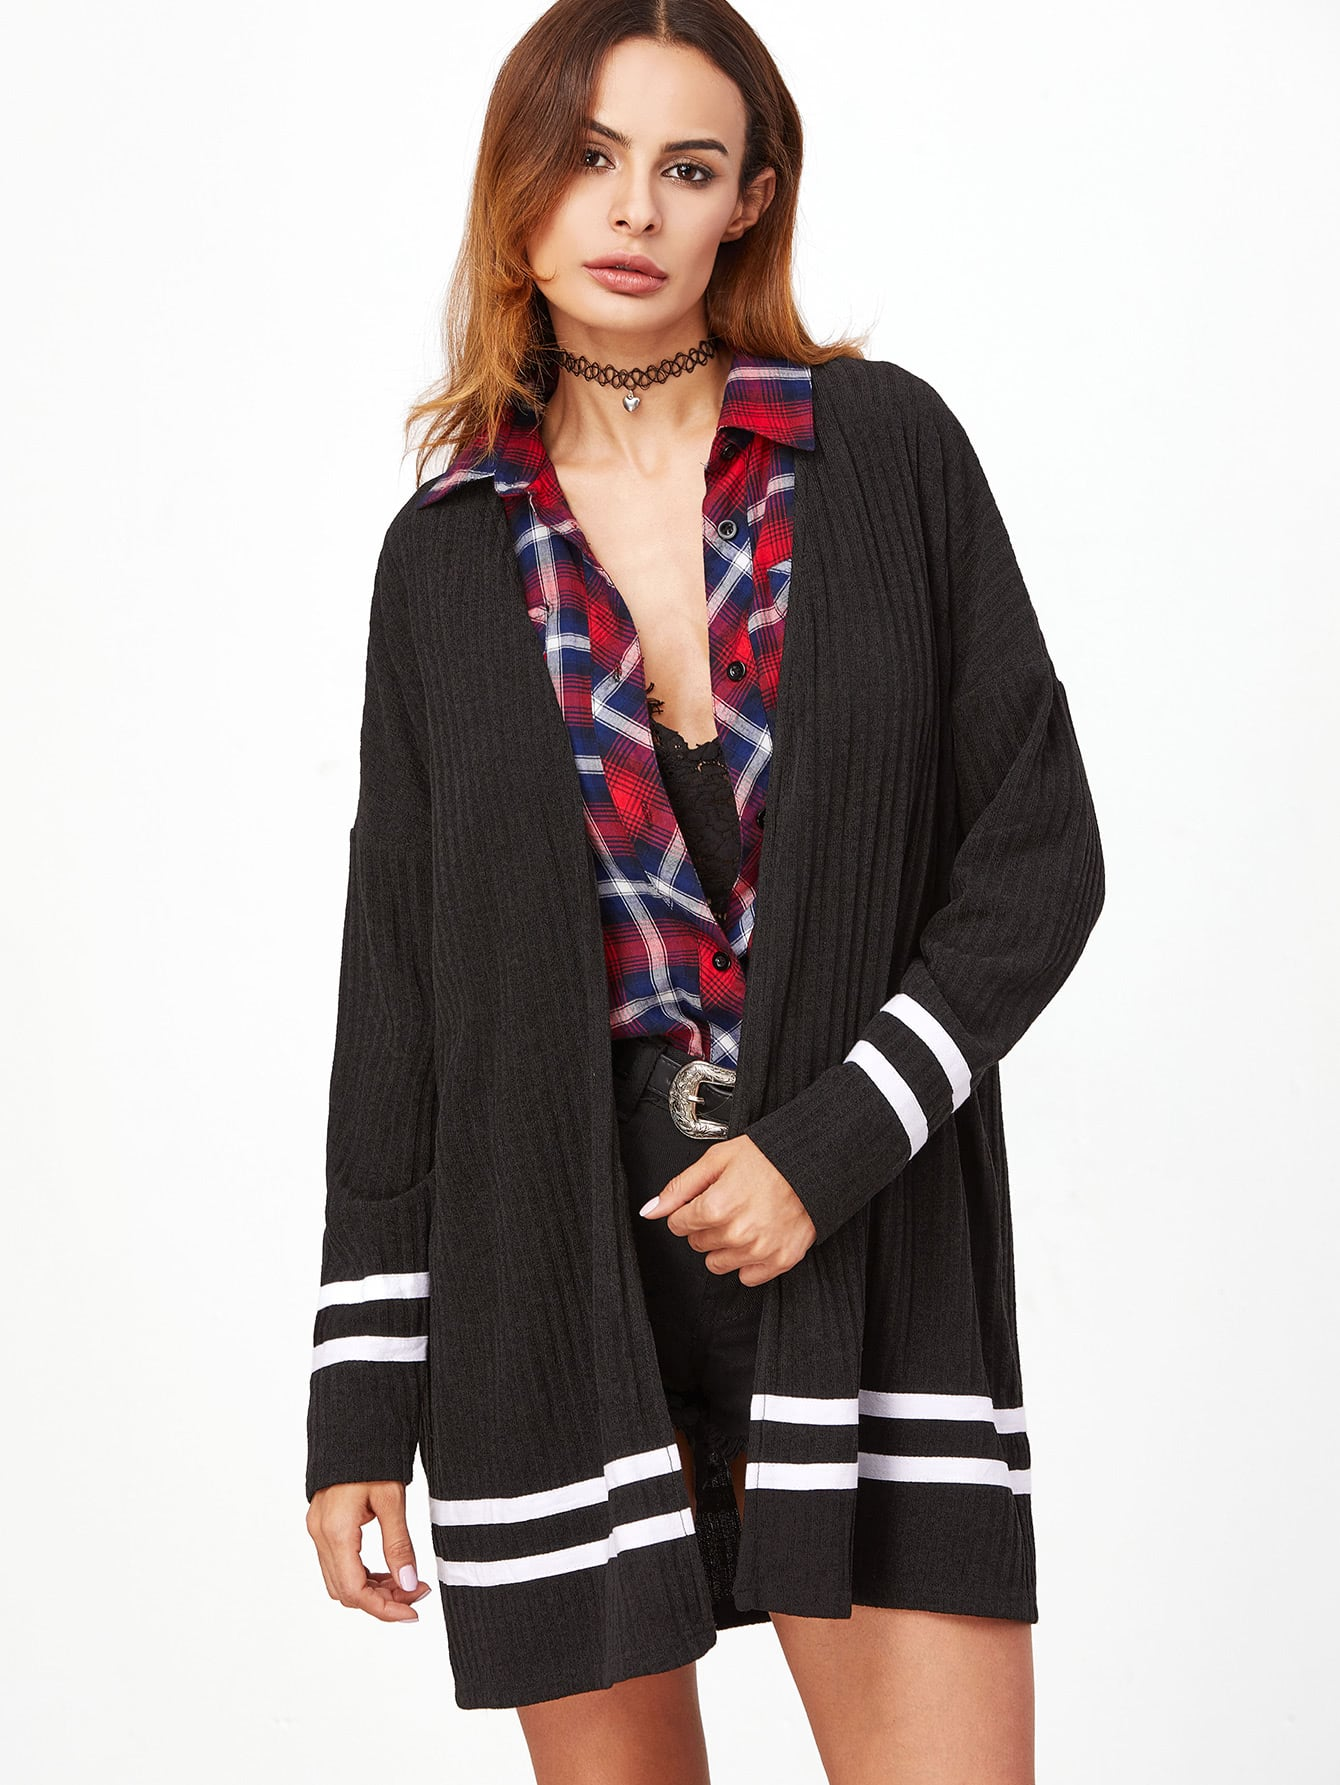 Drop Shoulder Ribbed Knit Striped Trim Coat outer161110702